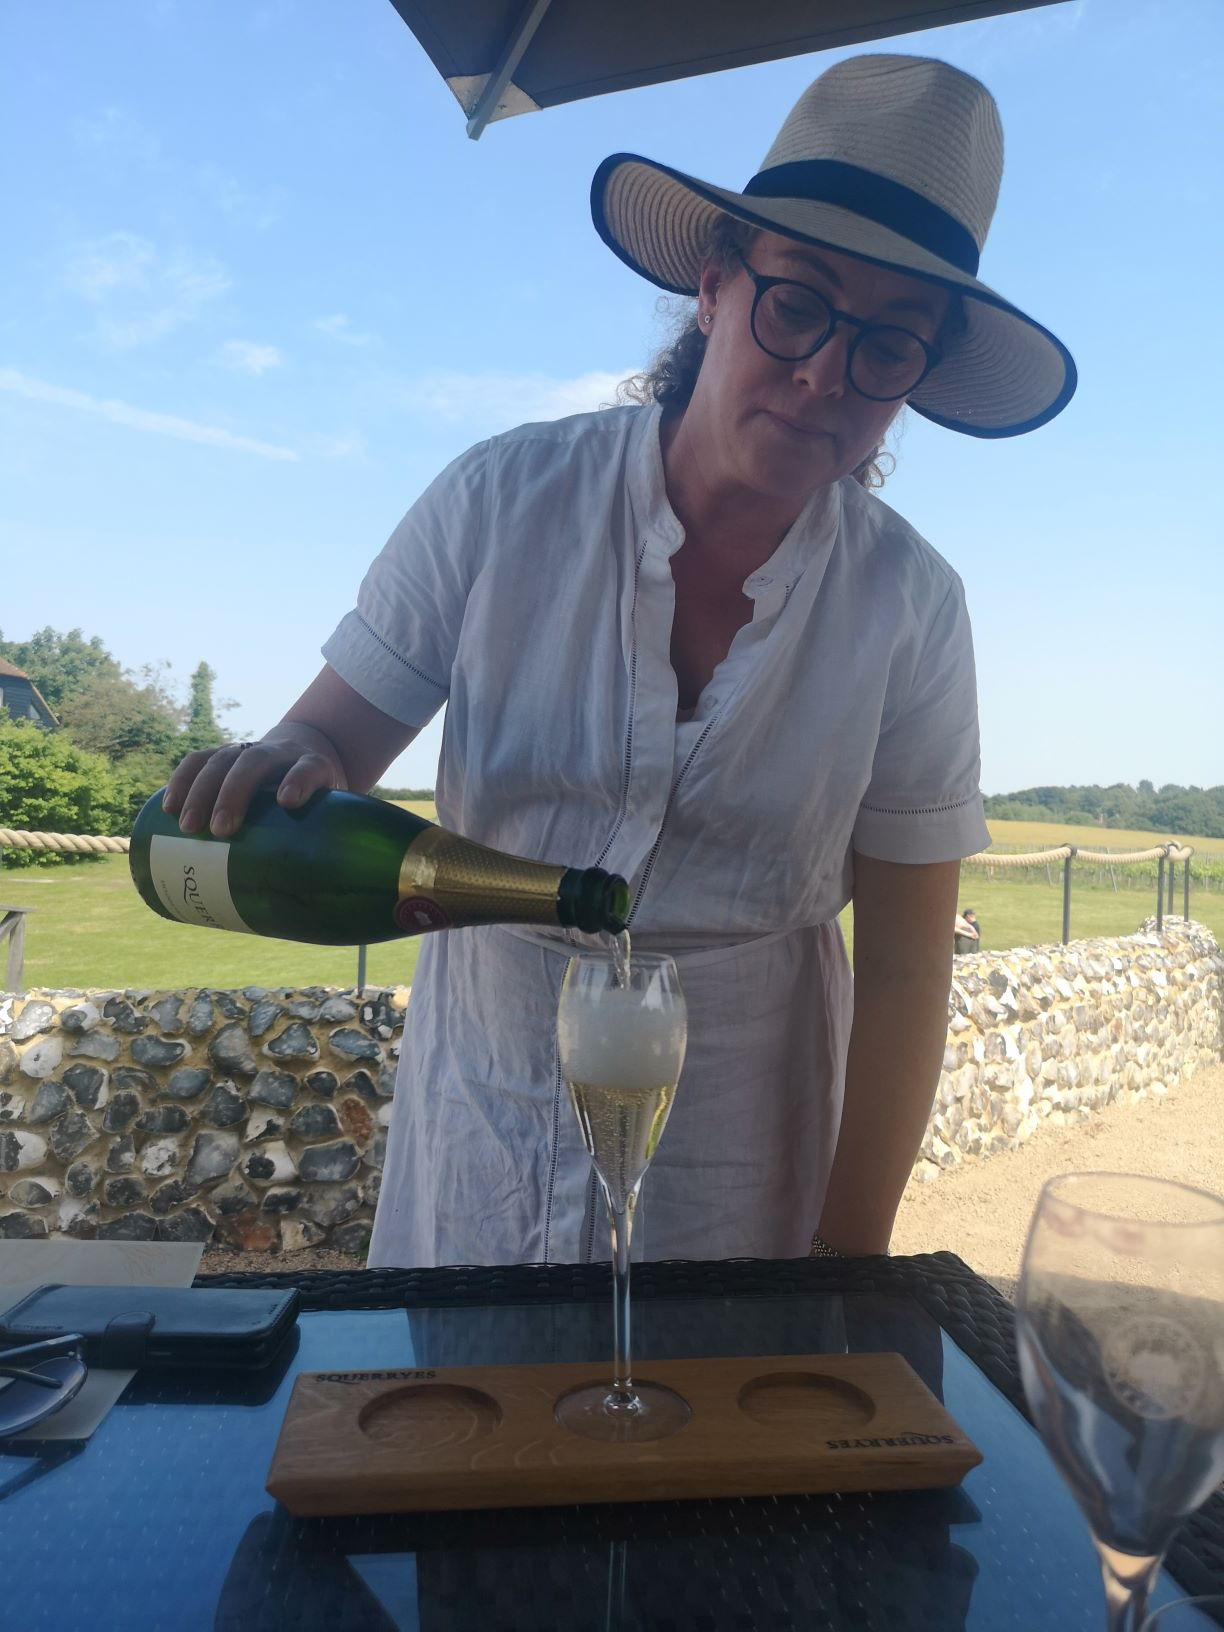 squerryes brut 2010 english sparkling wine being poured by their brand ambassador